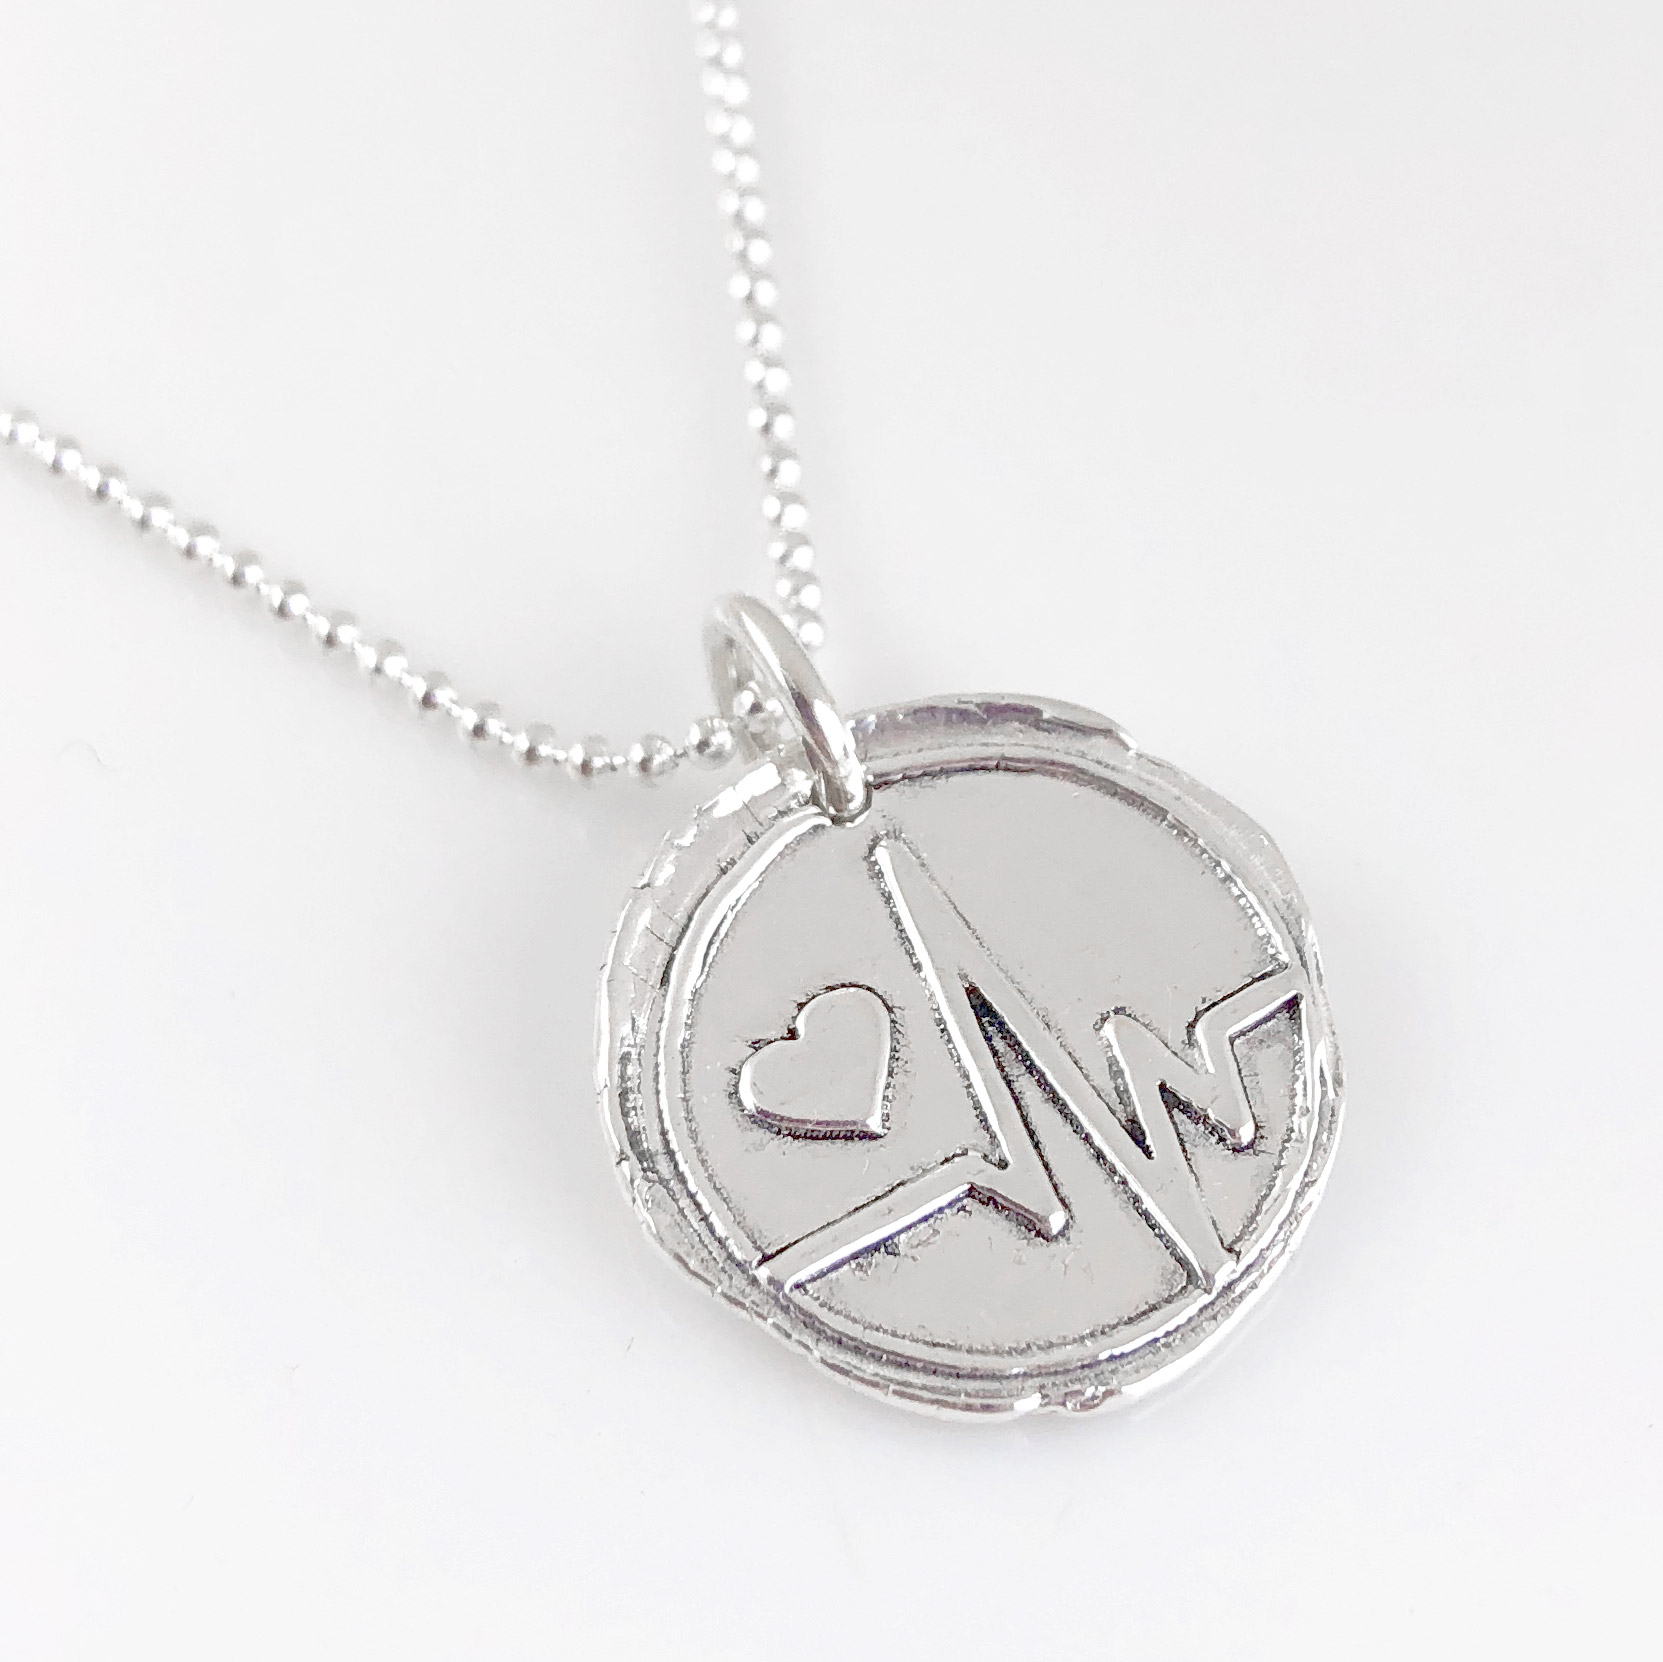 Heartbeat Wax Seal Necklace (Ready to Ship)